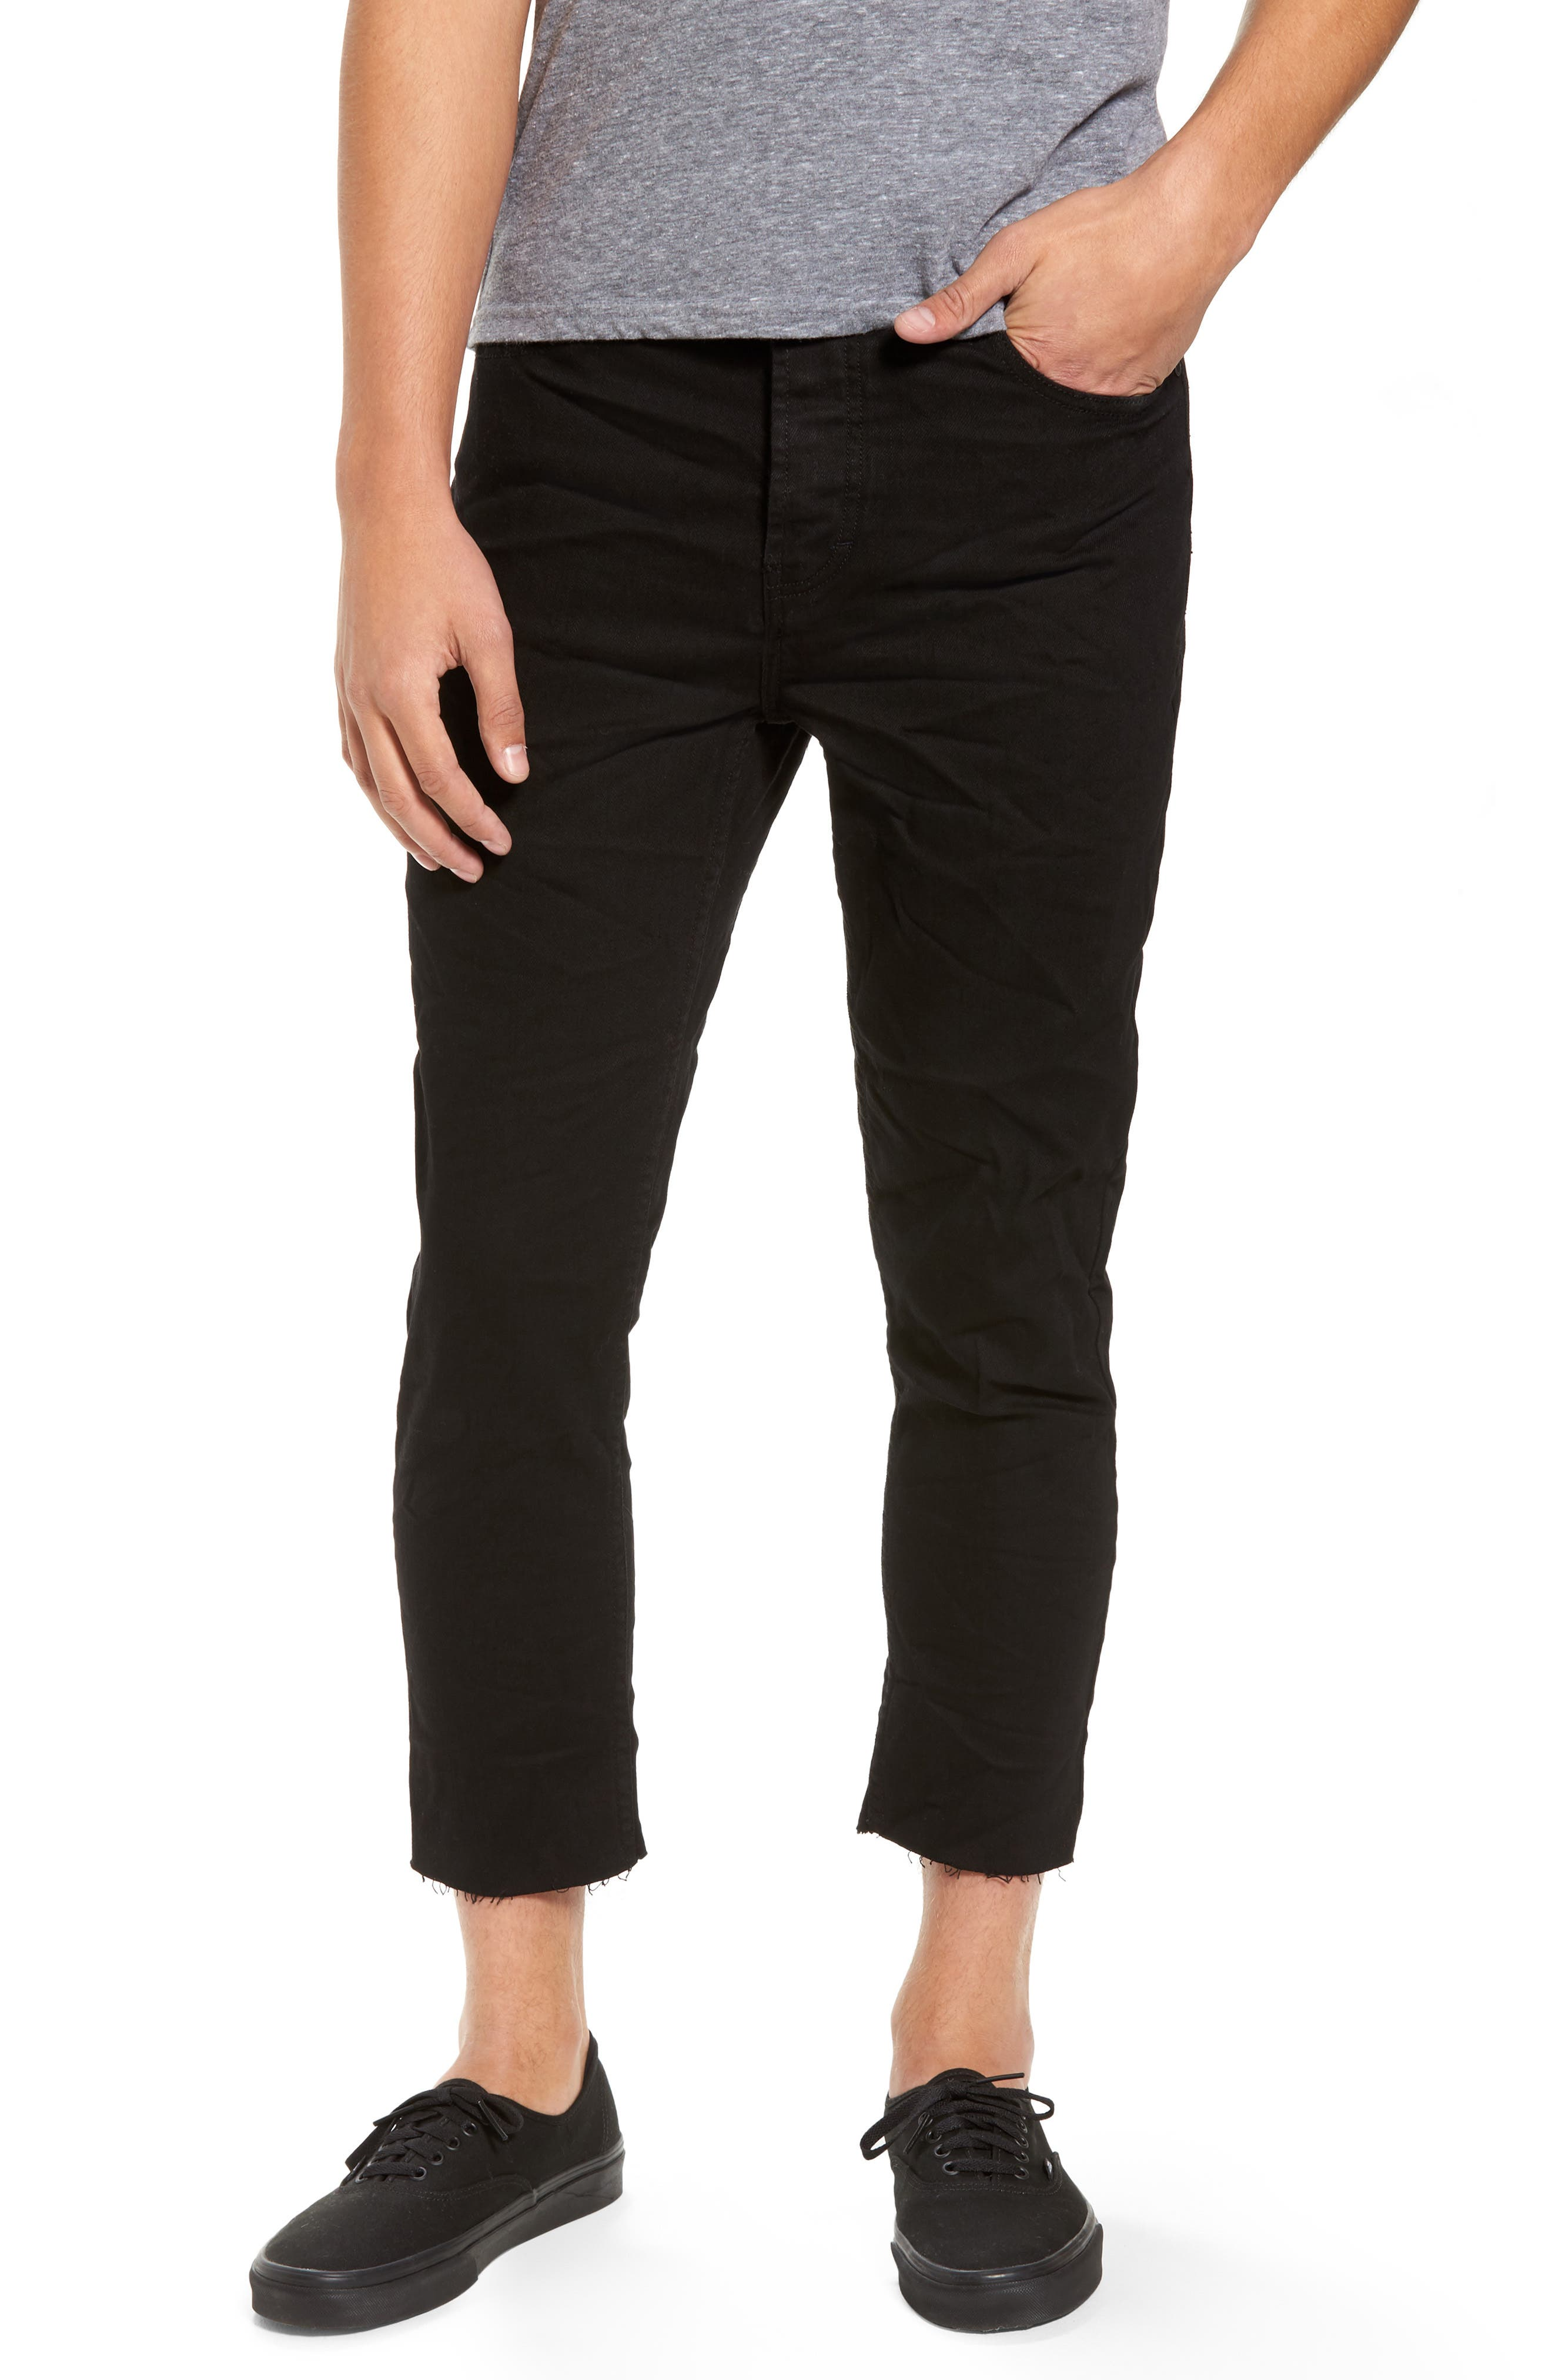 Barney Cools B.Line Crop Slim Fit Jeans